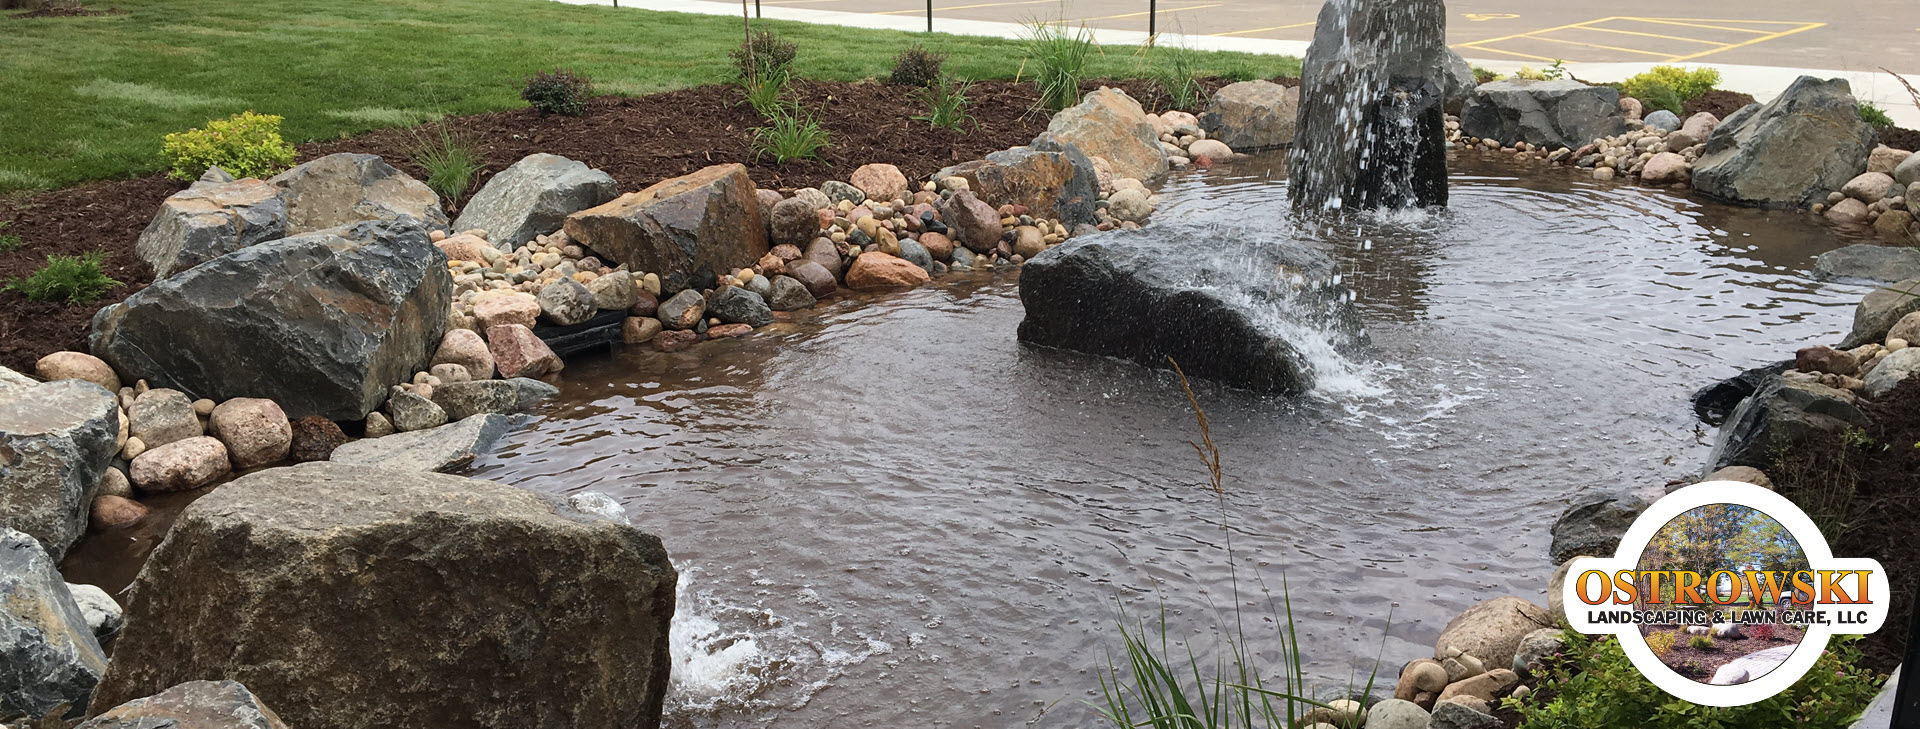 Landscaping & water feature design<br /> and installation